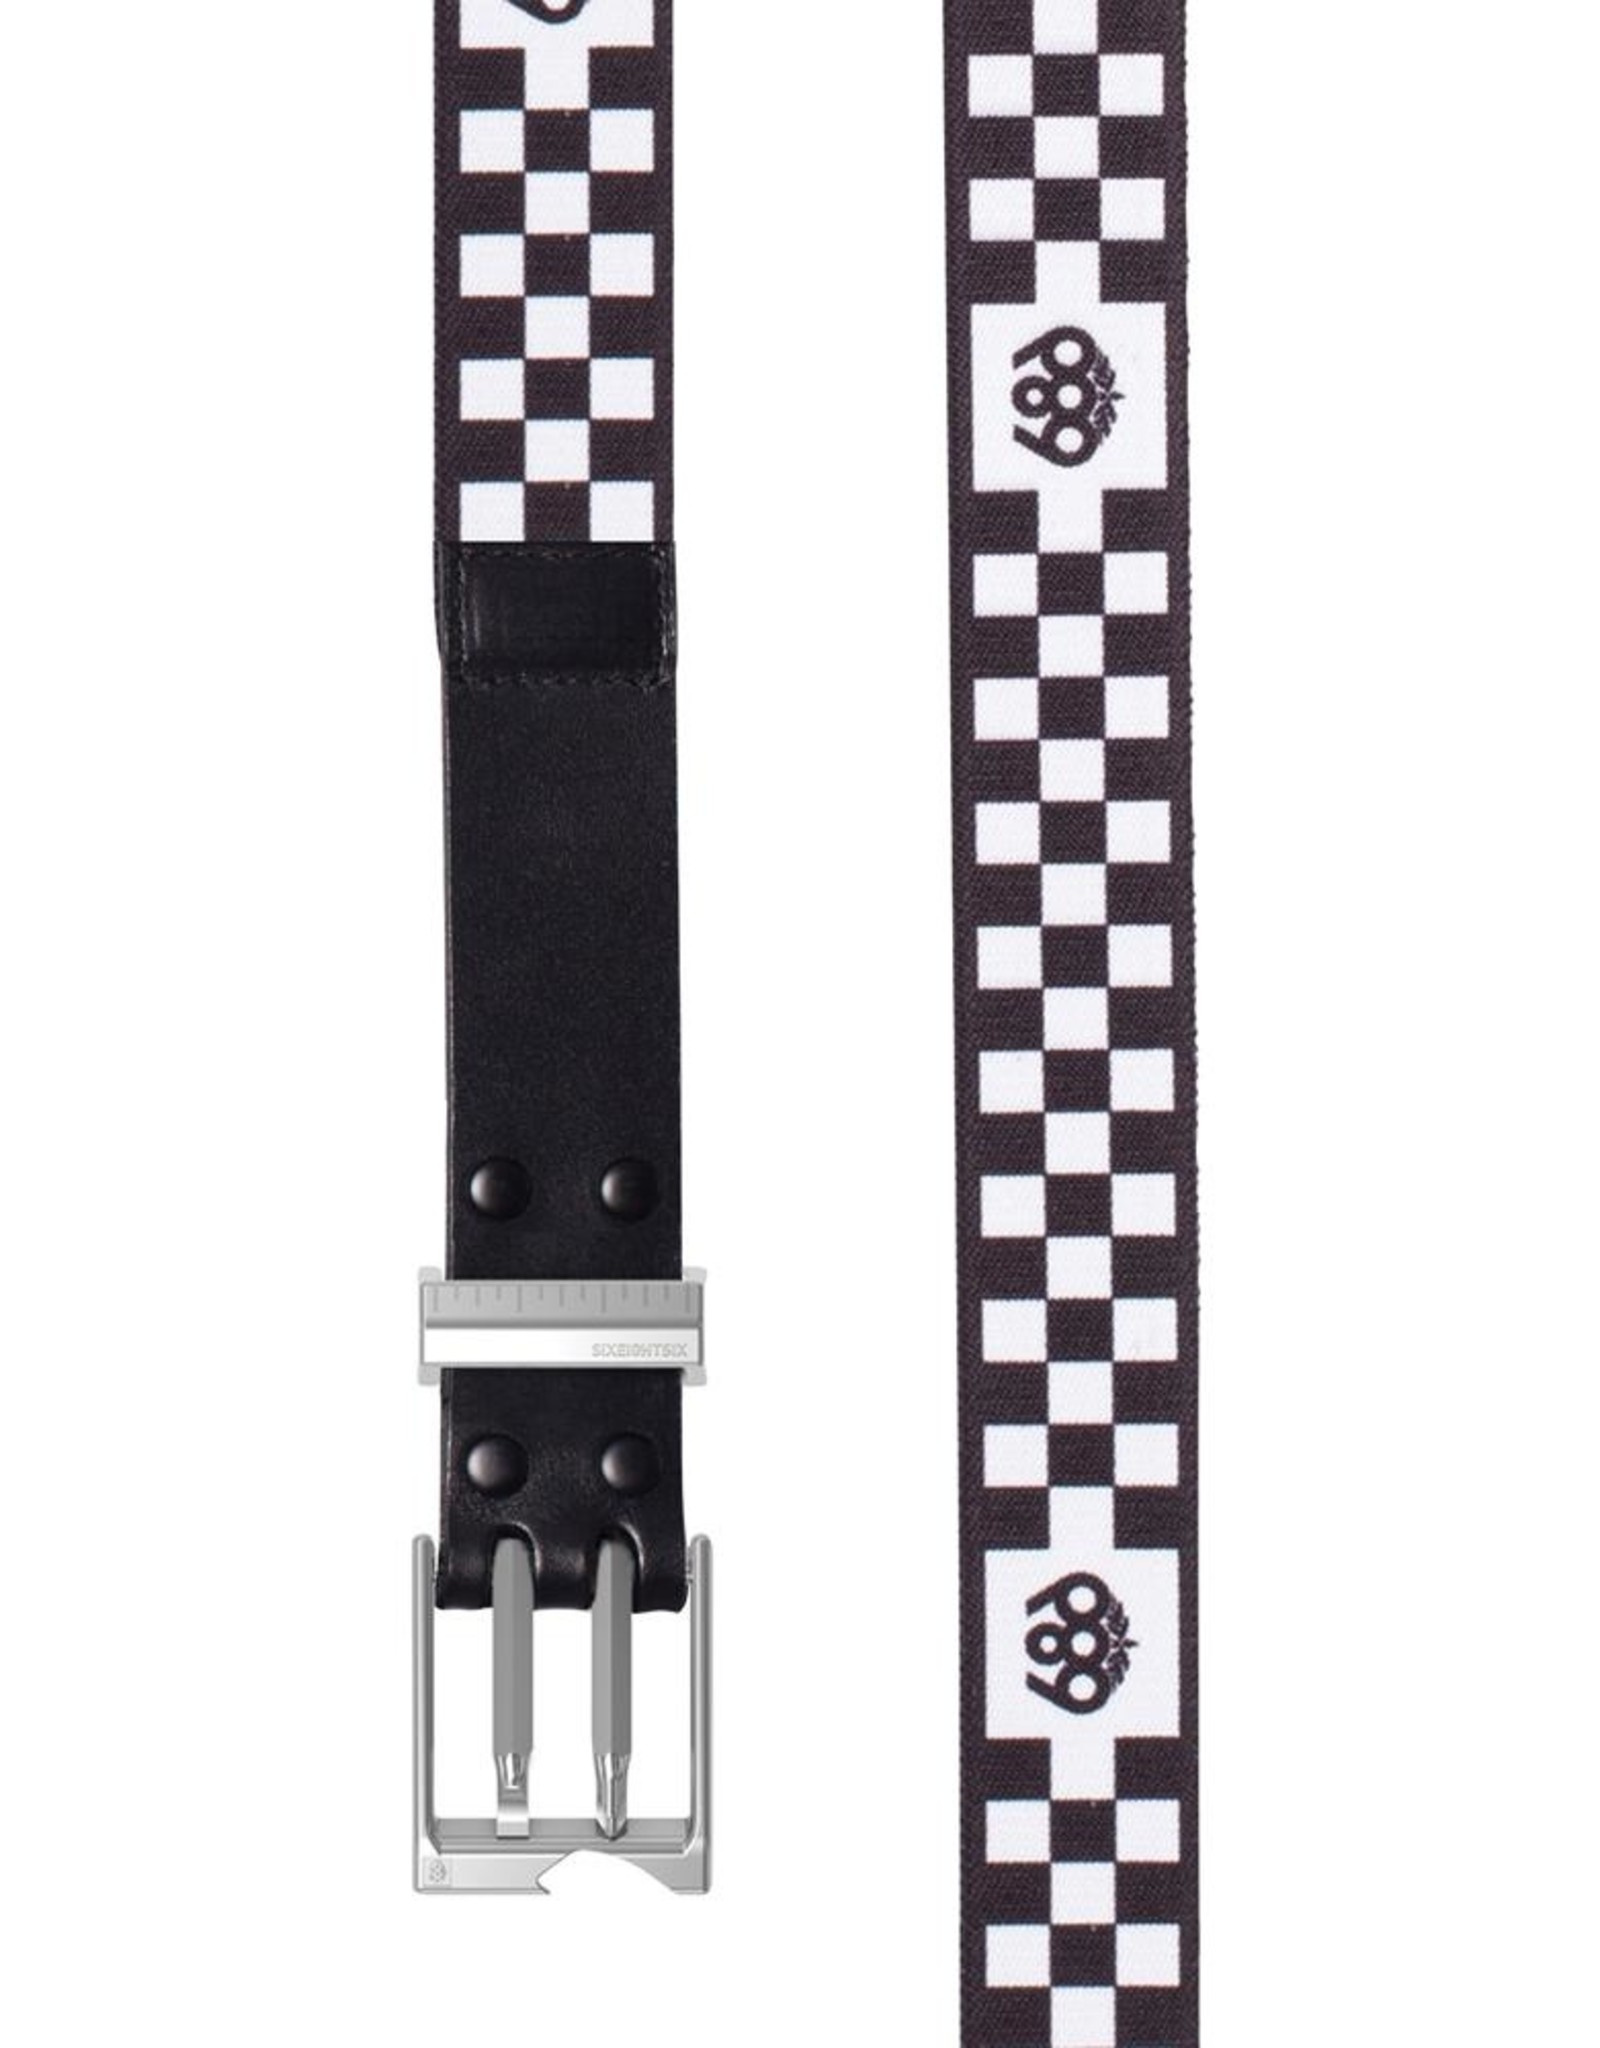 686 686 - OG STRETCH TOOL BELT - CHECKERED